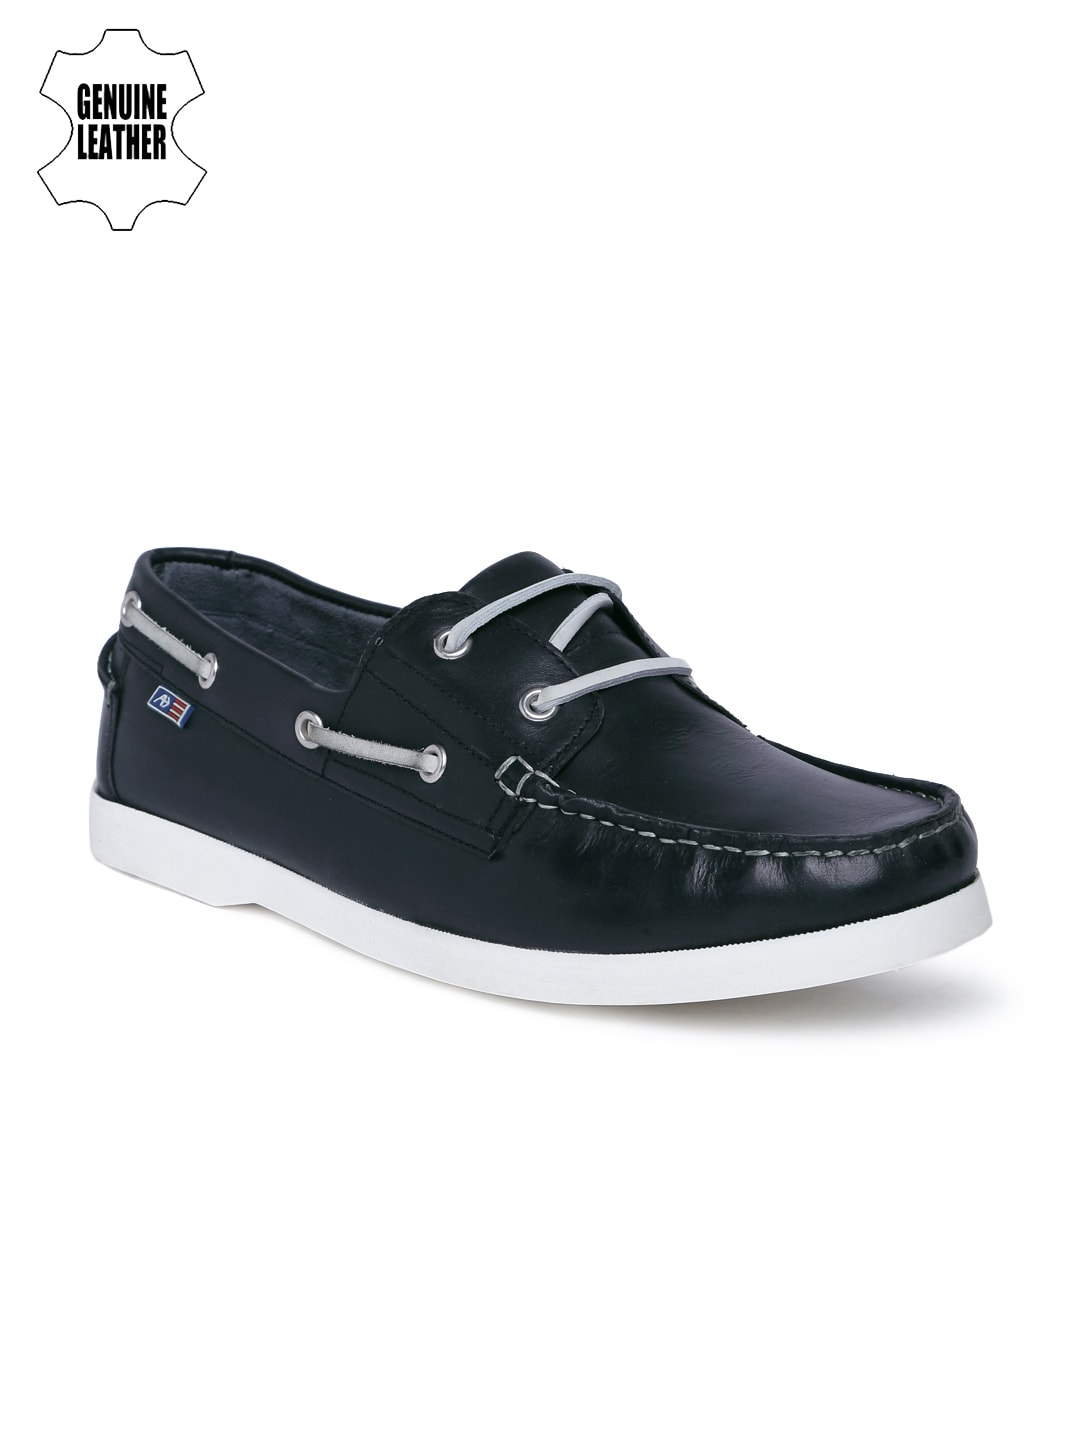 Arrow Hindren Navy Blue Moccasins for Men online in India at Best ... 56d74e71f